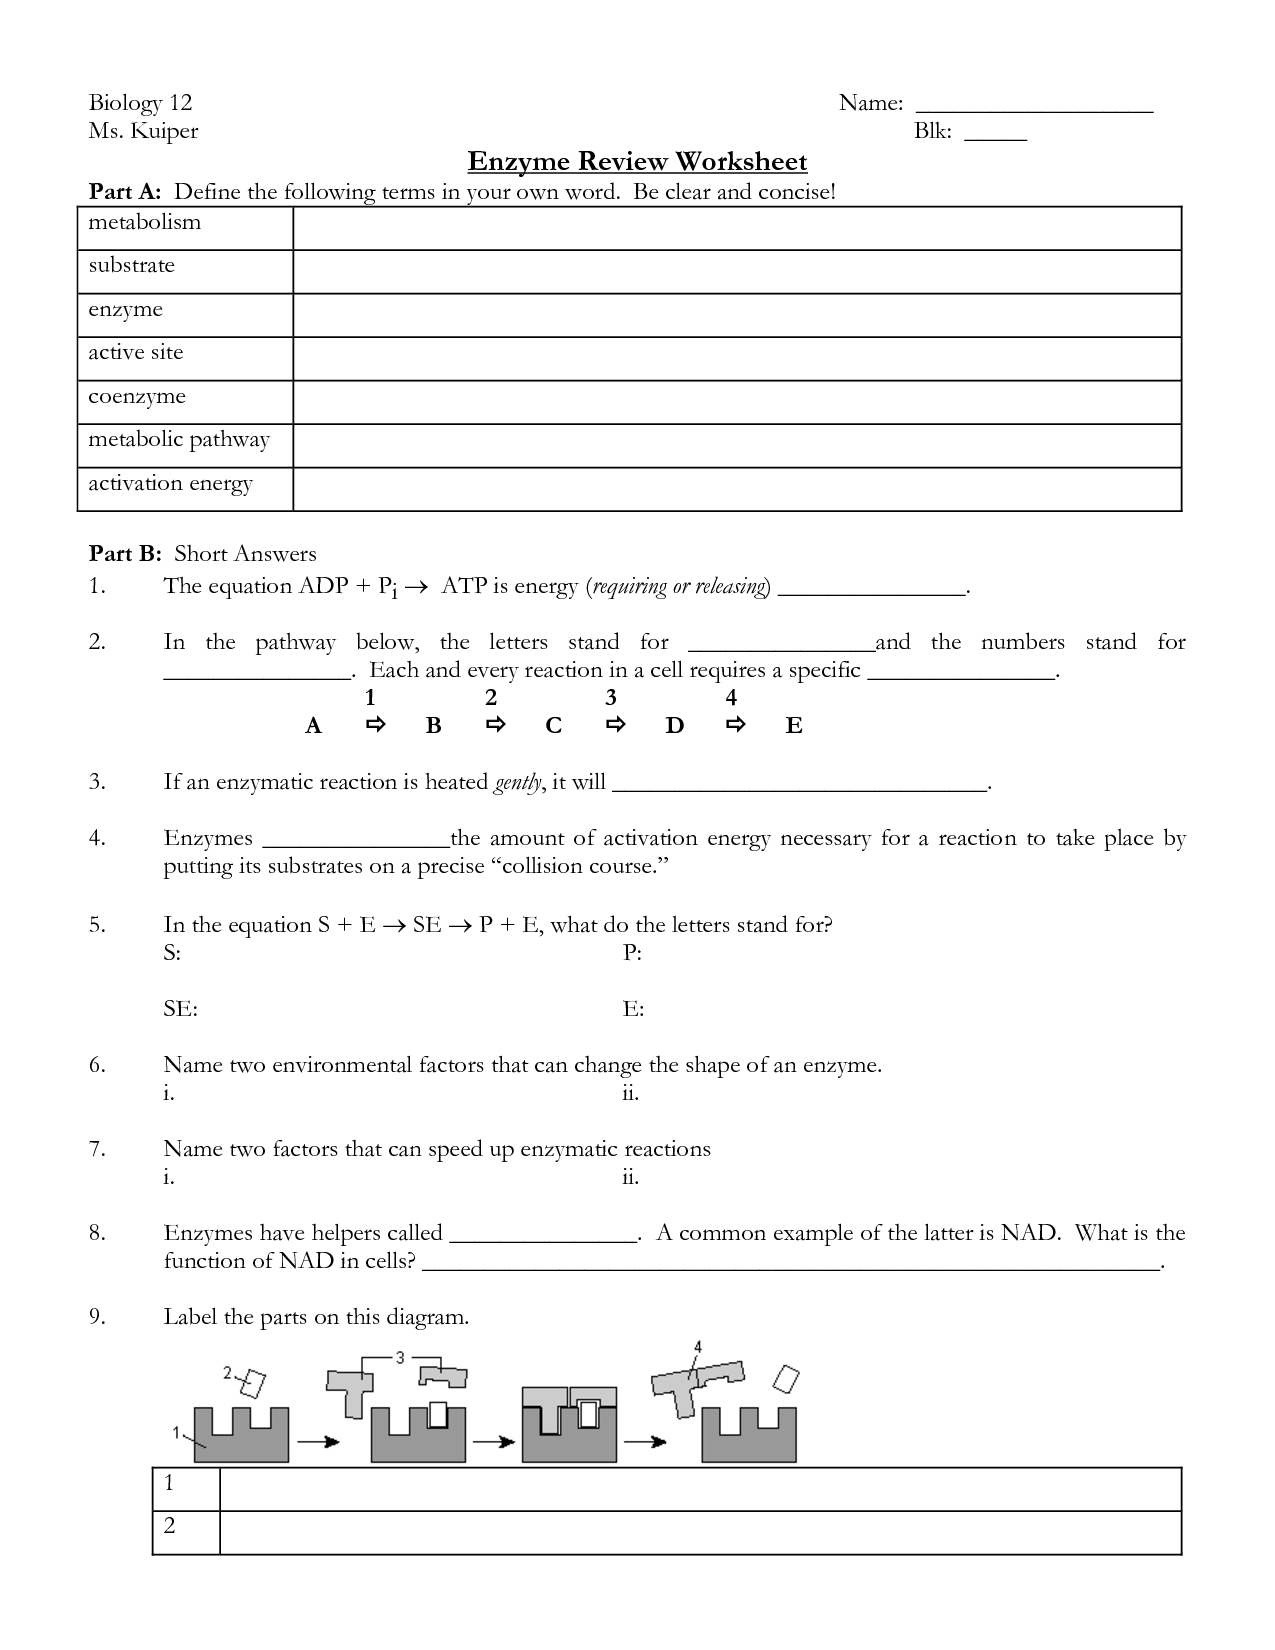 30 Ap Biology Enzymes At Work Worksheet Answers